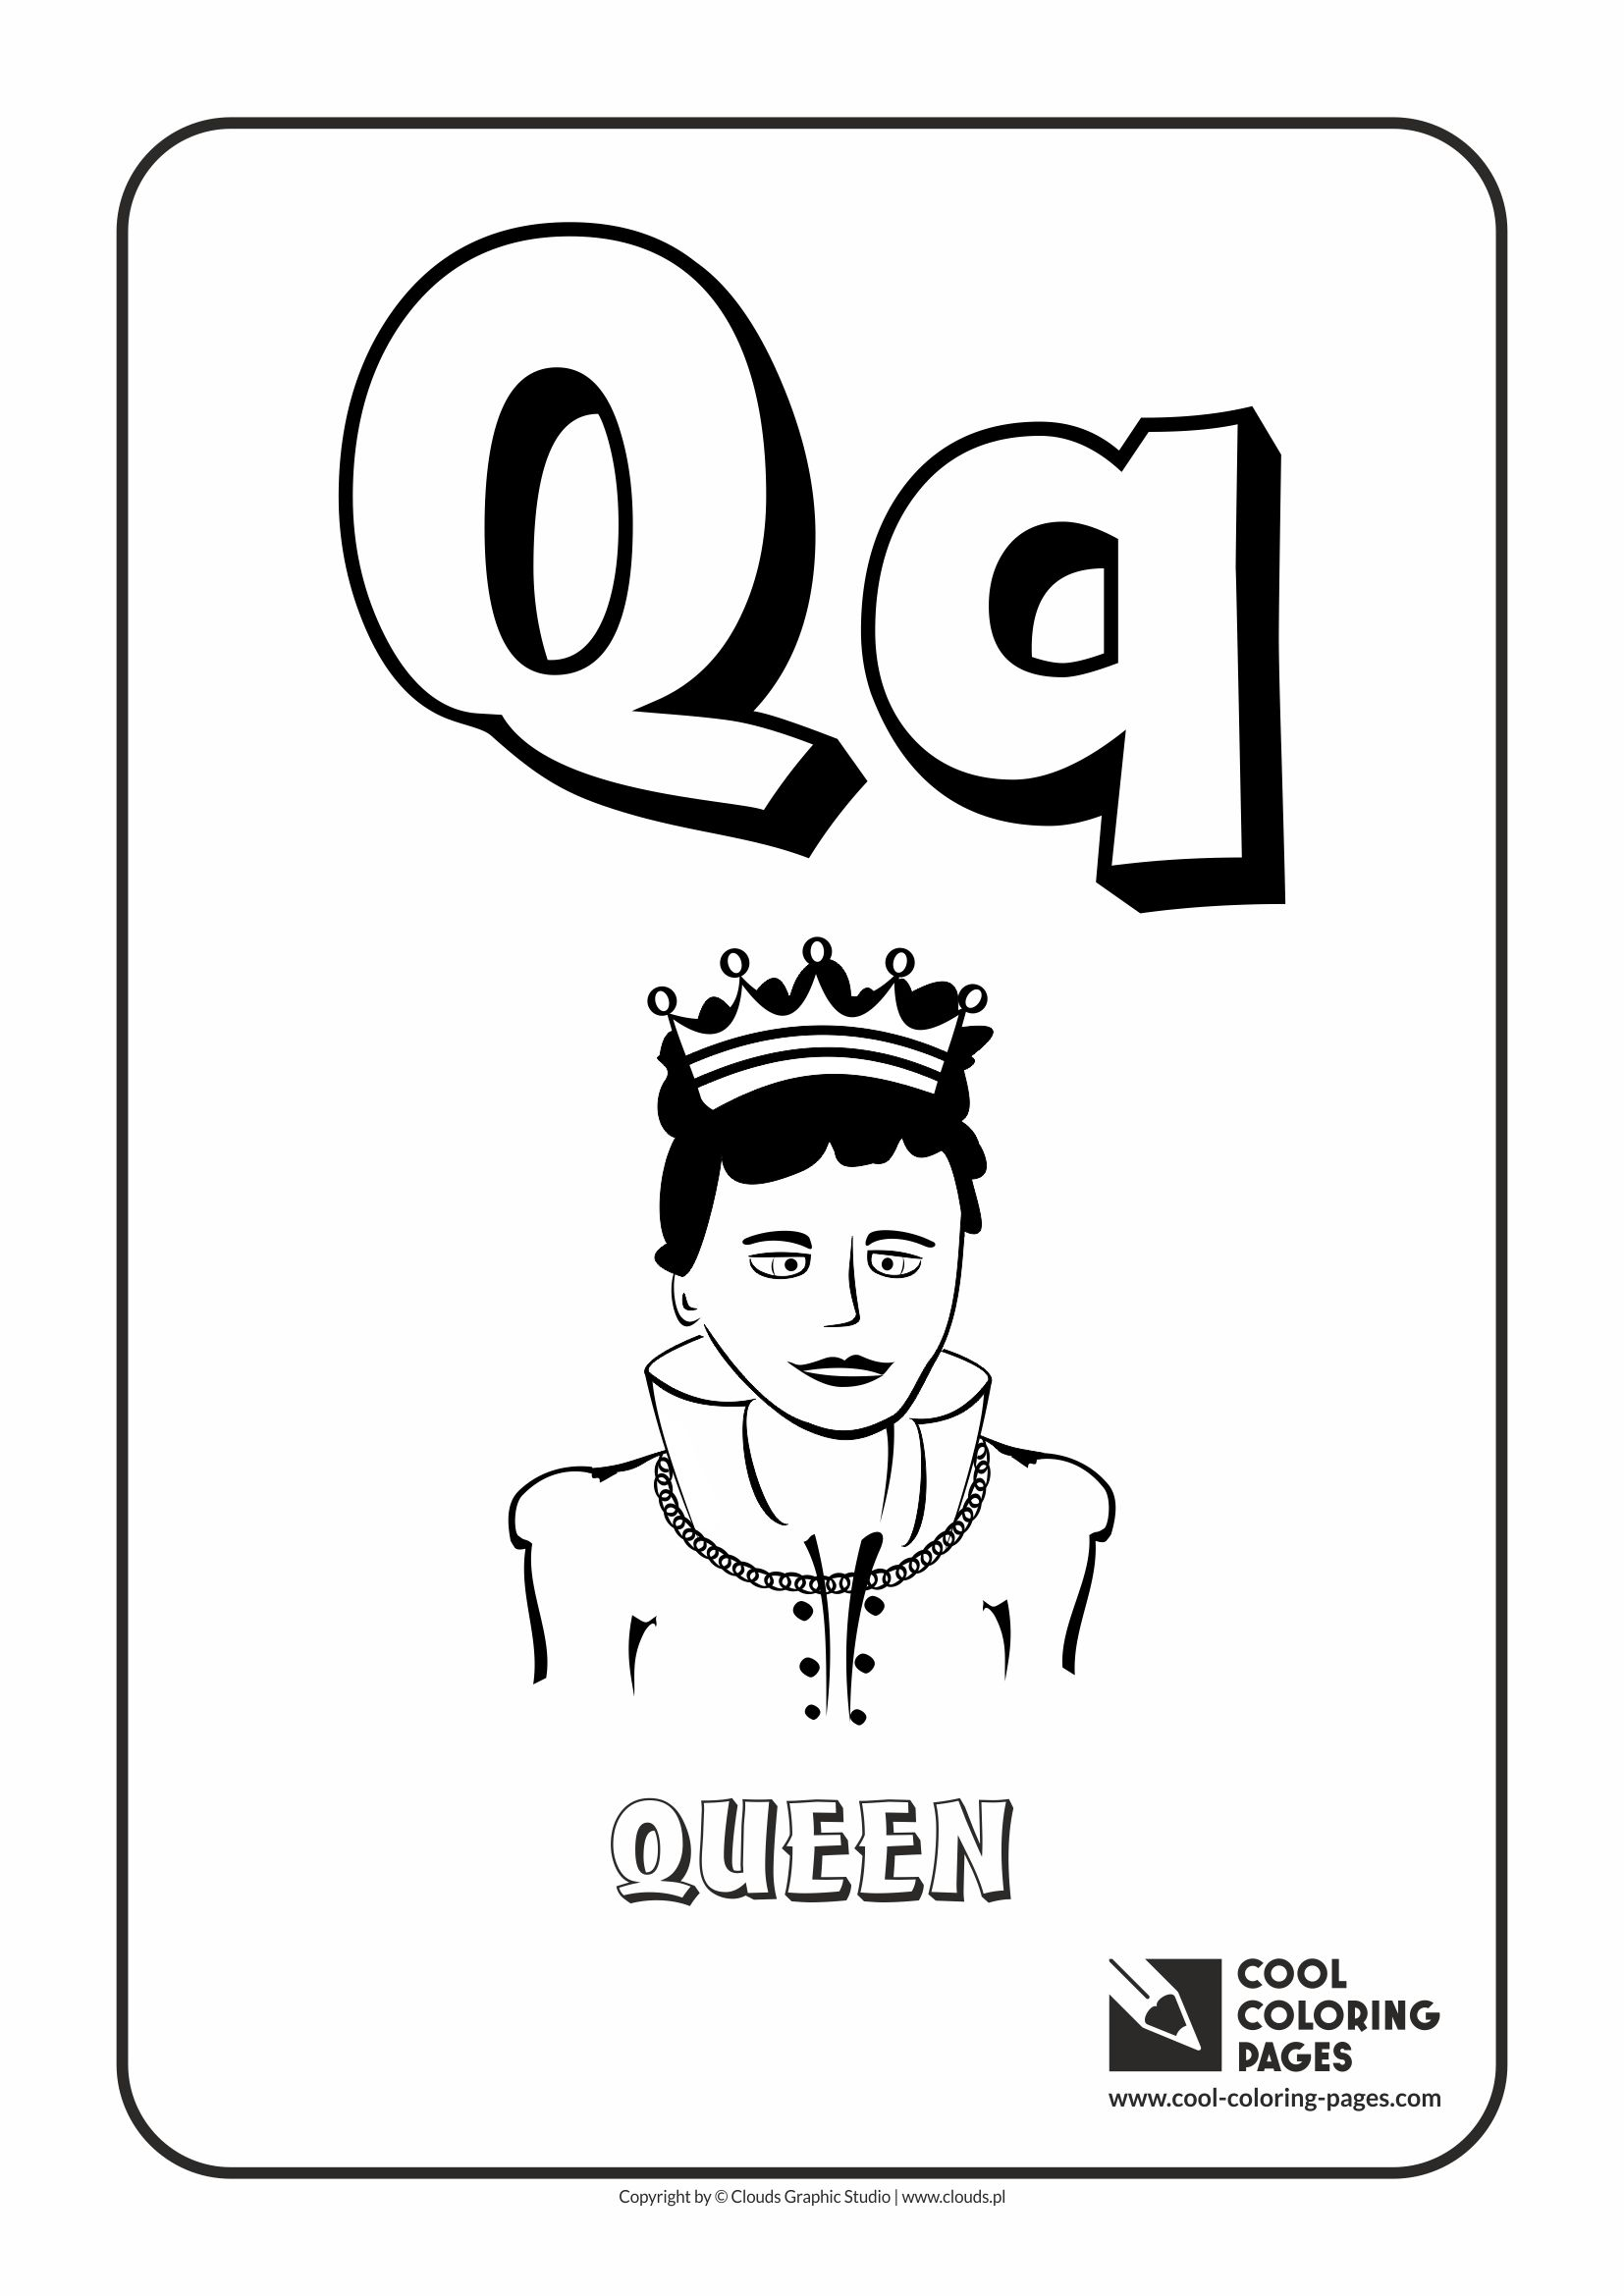 Cool Coloring Pages Letter Q